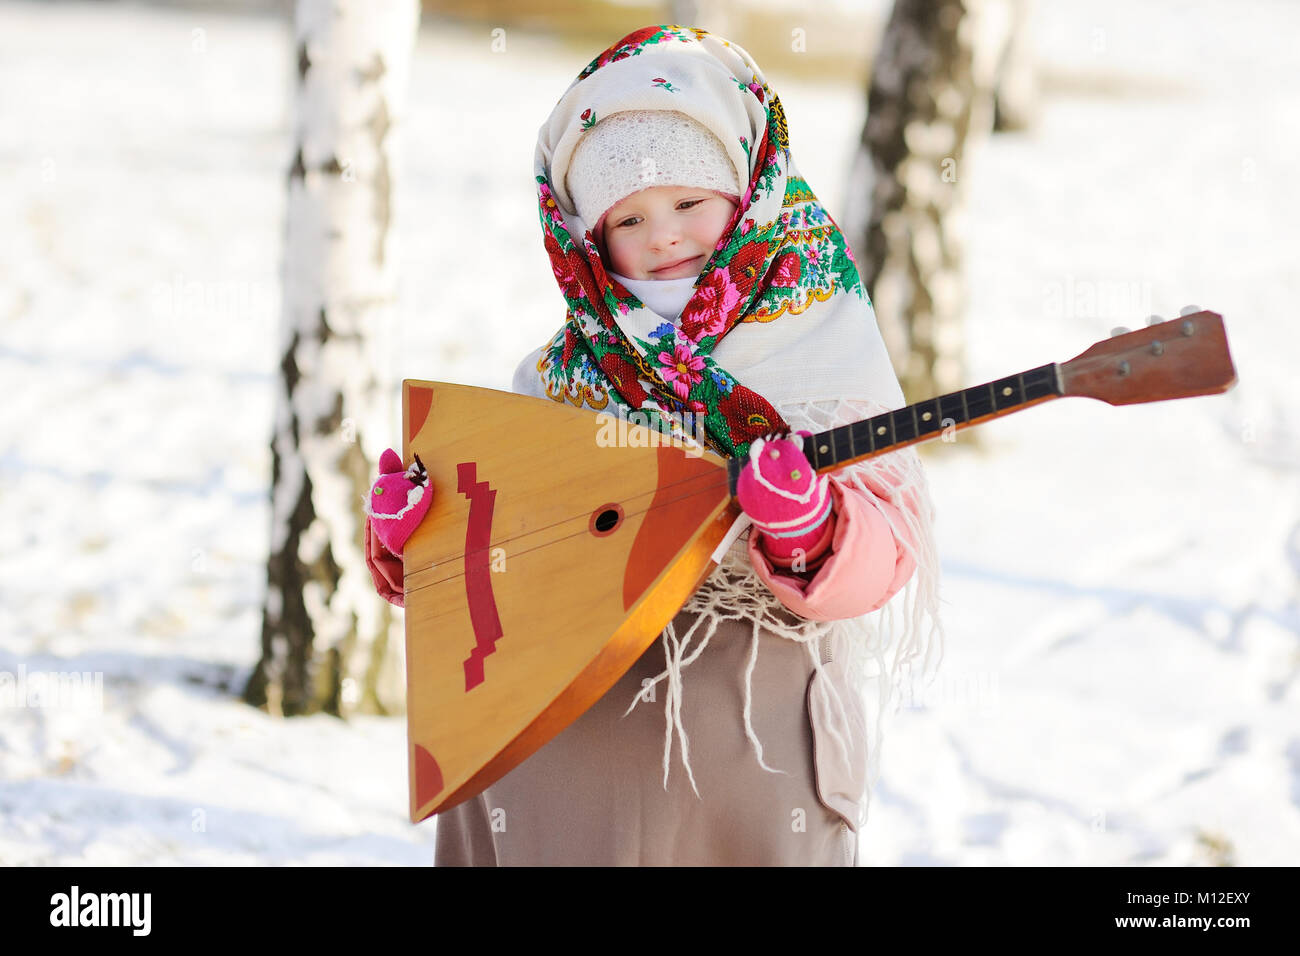 child girl in a fur coat and a scarf in Russian with a balalaika - Stock Image